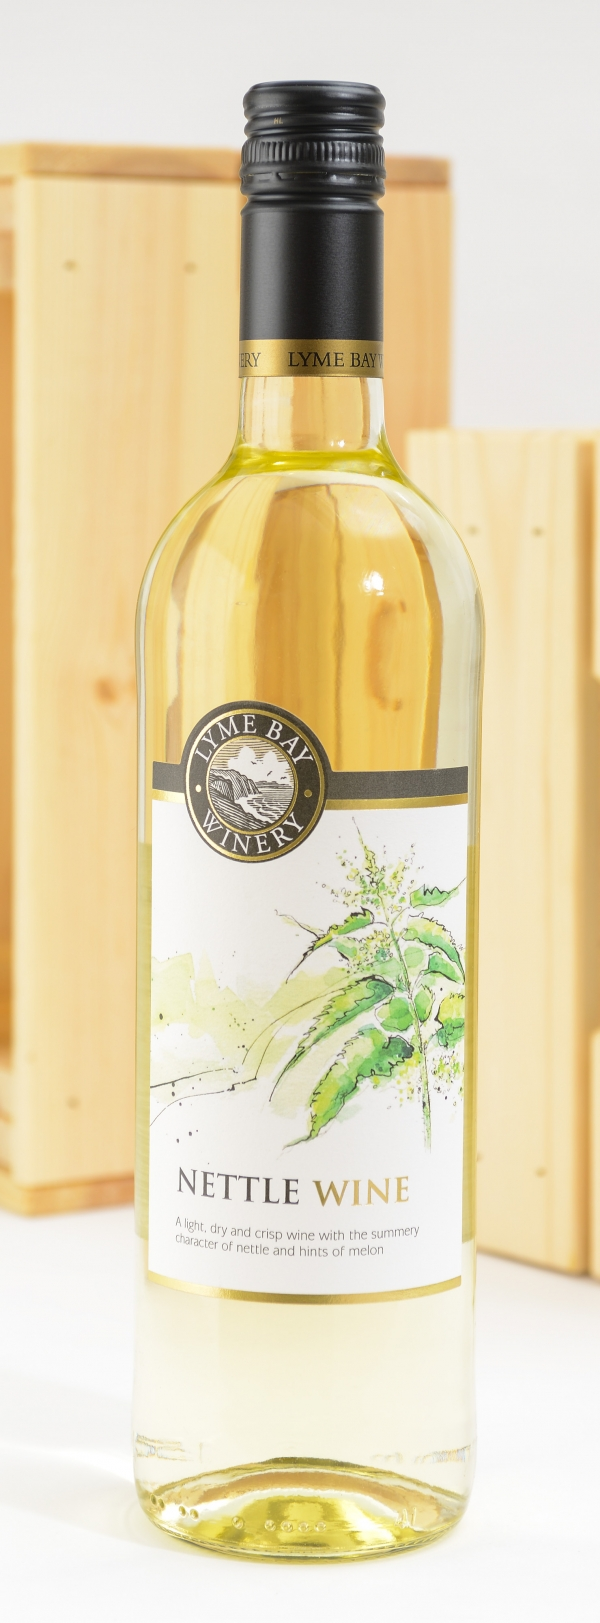 <p>Nettle Wine - Crisp dry acidity | Hartington Cheese Shop</p>